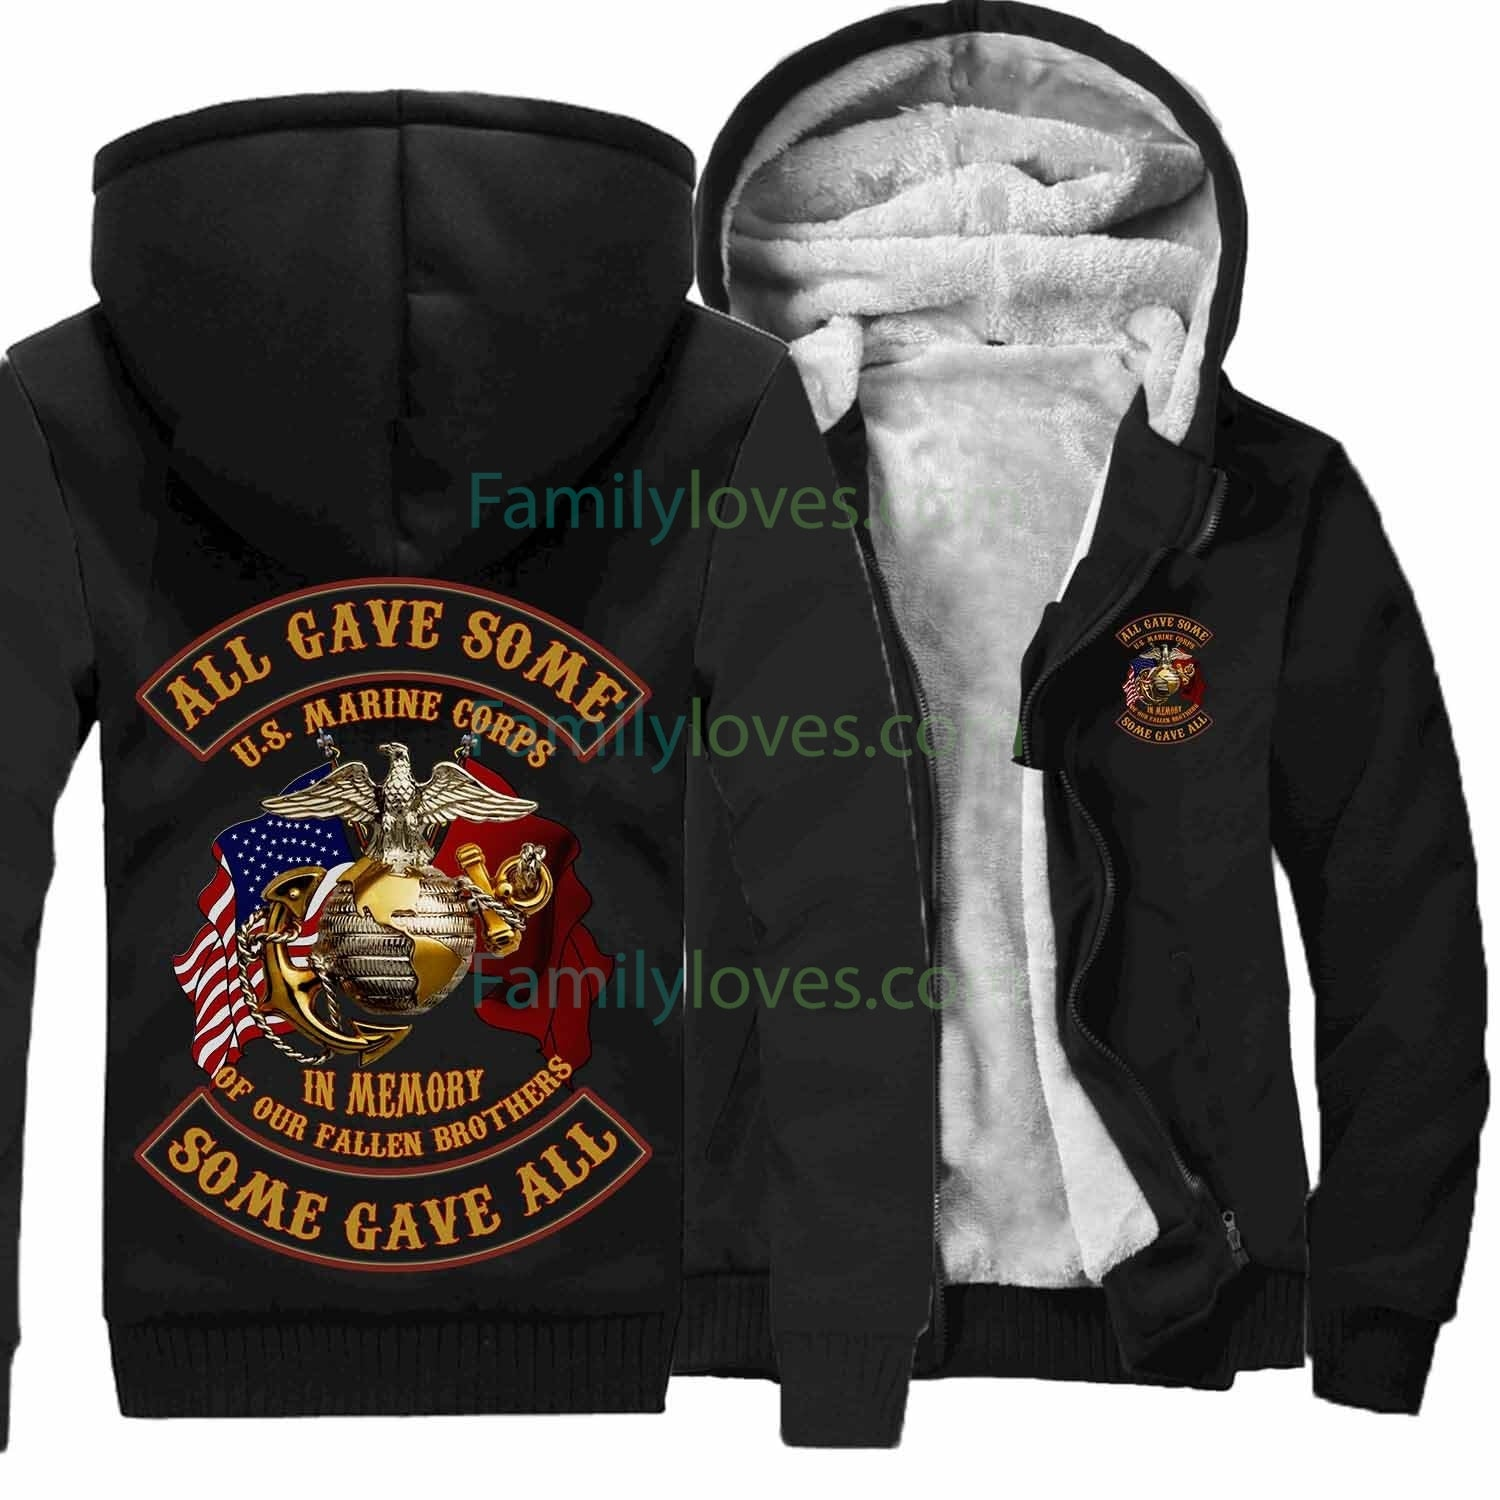 U.S MARINES SEMPER FIDELIS ALL GAVE SOME SOME GAVE ALL